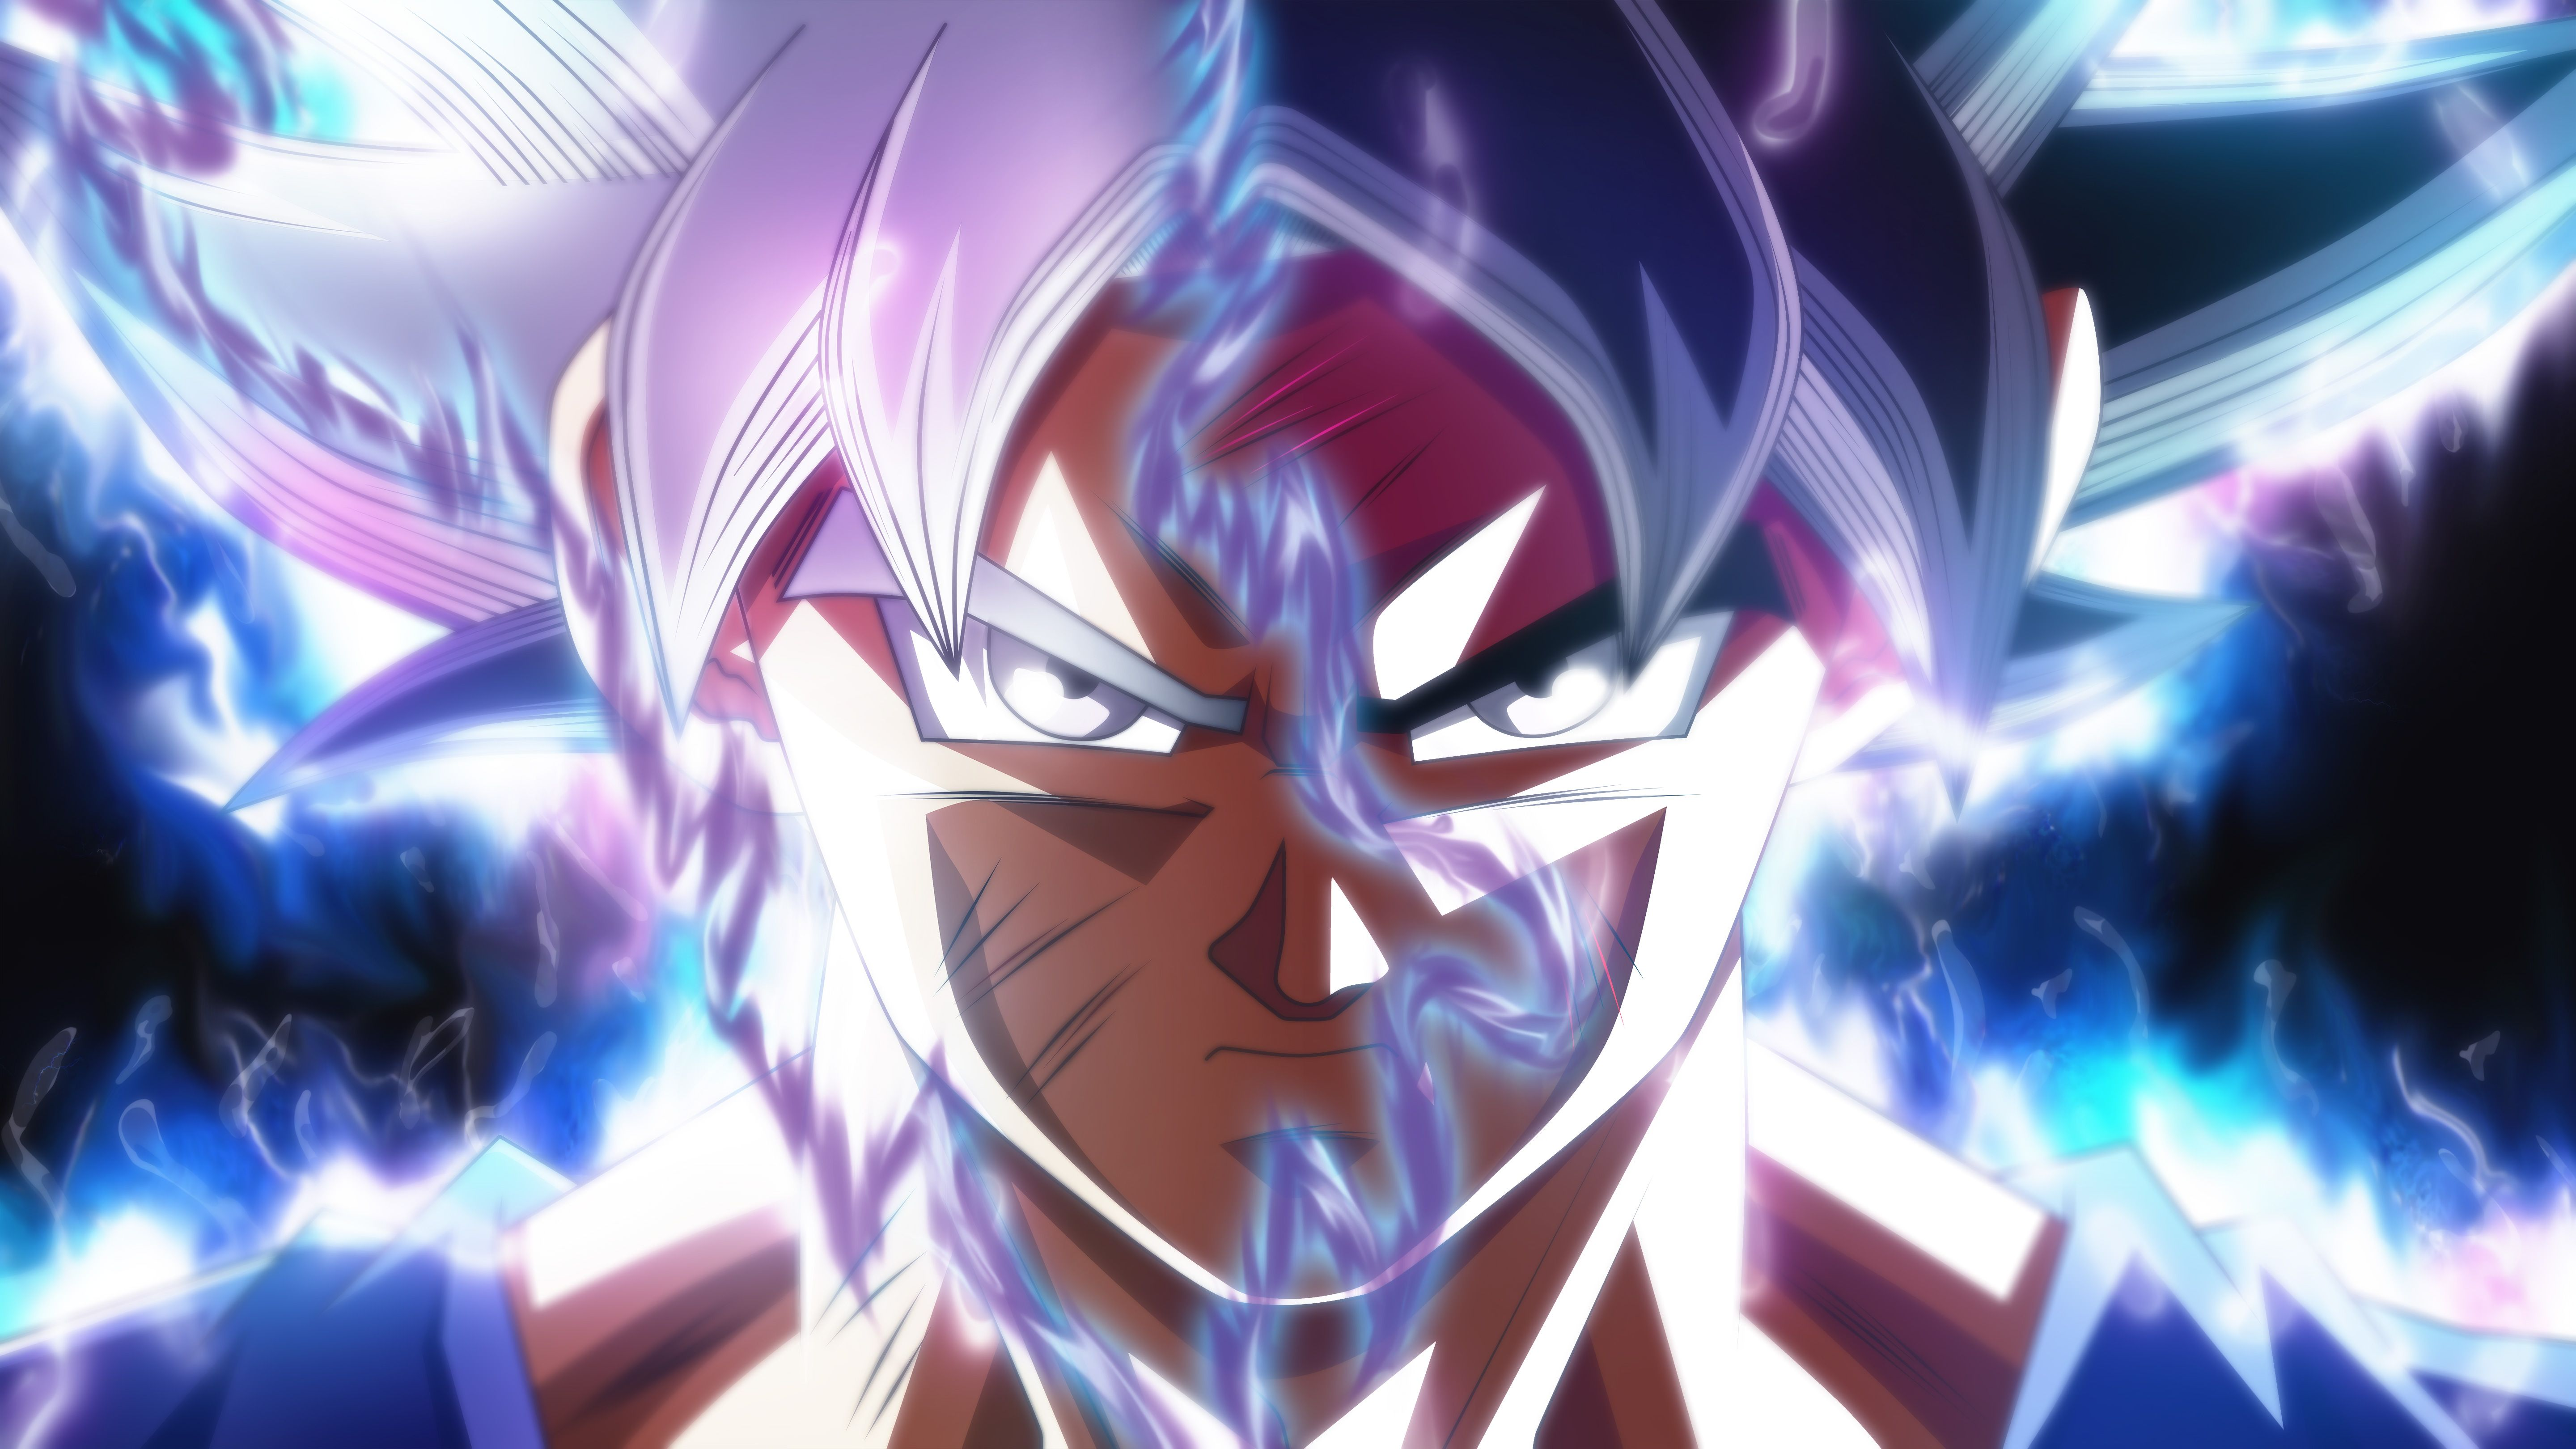 ultra instinct hd wallpaper, ultra instinct goku hd wallpaper